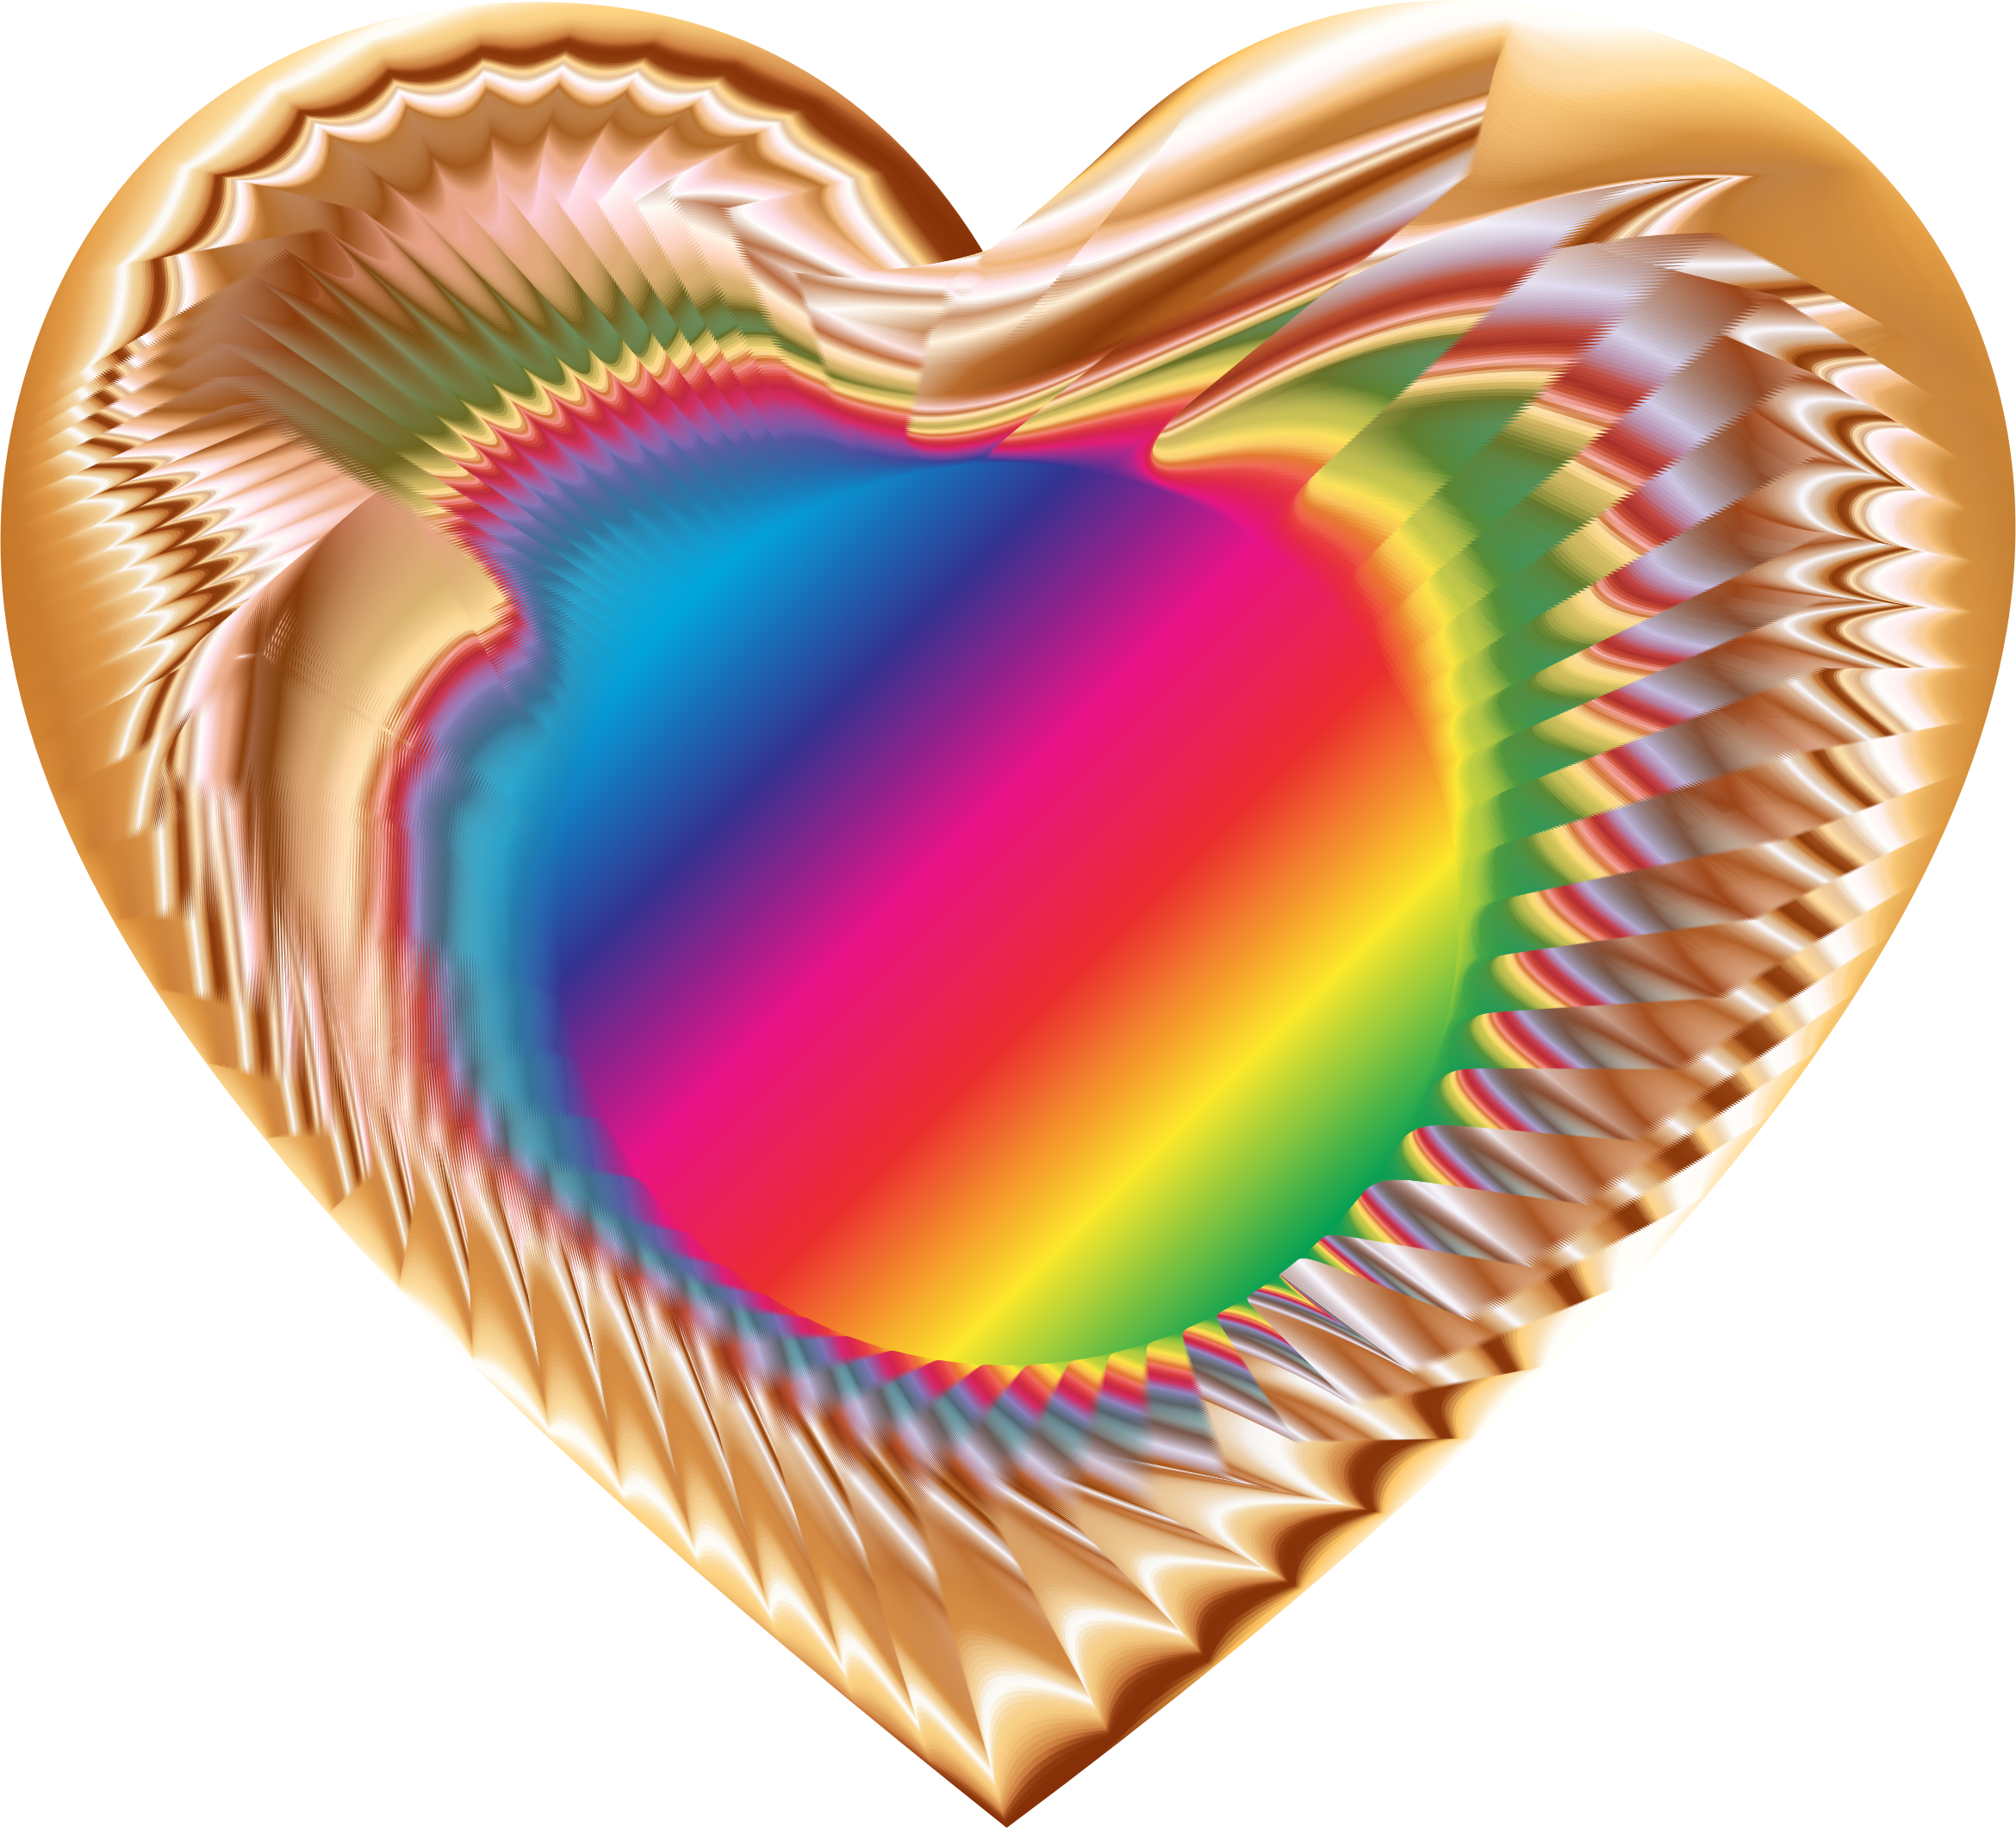 Colorful Refraction Heart 10 by GDJ